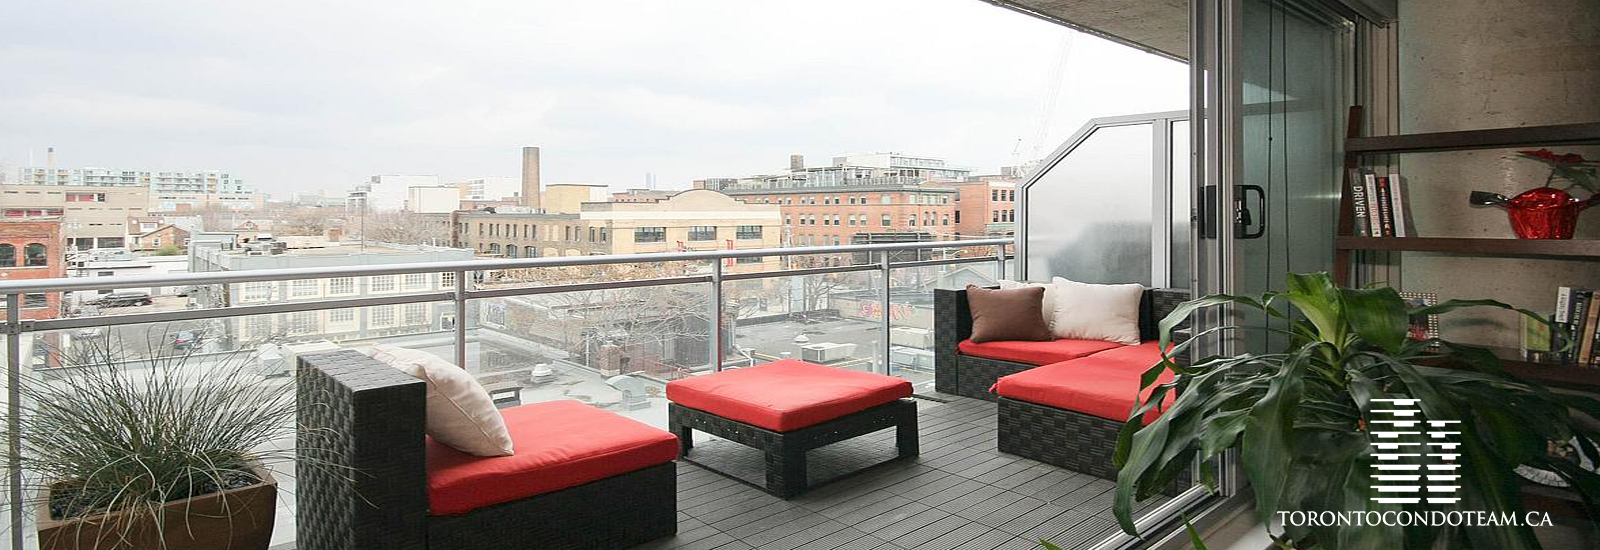 20 Stewart Street West Condos For Sale